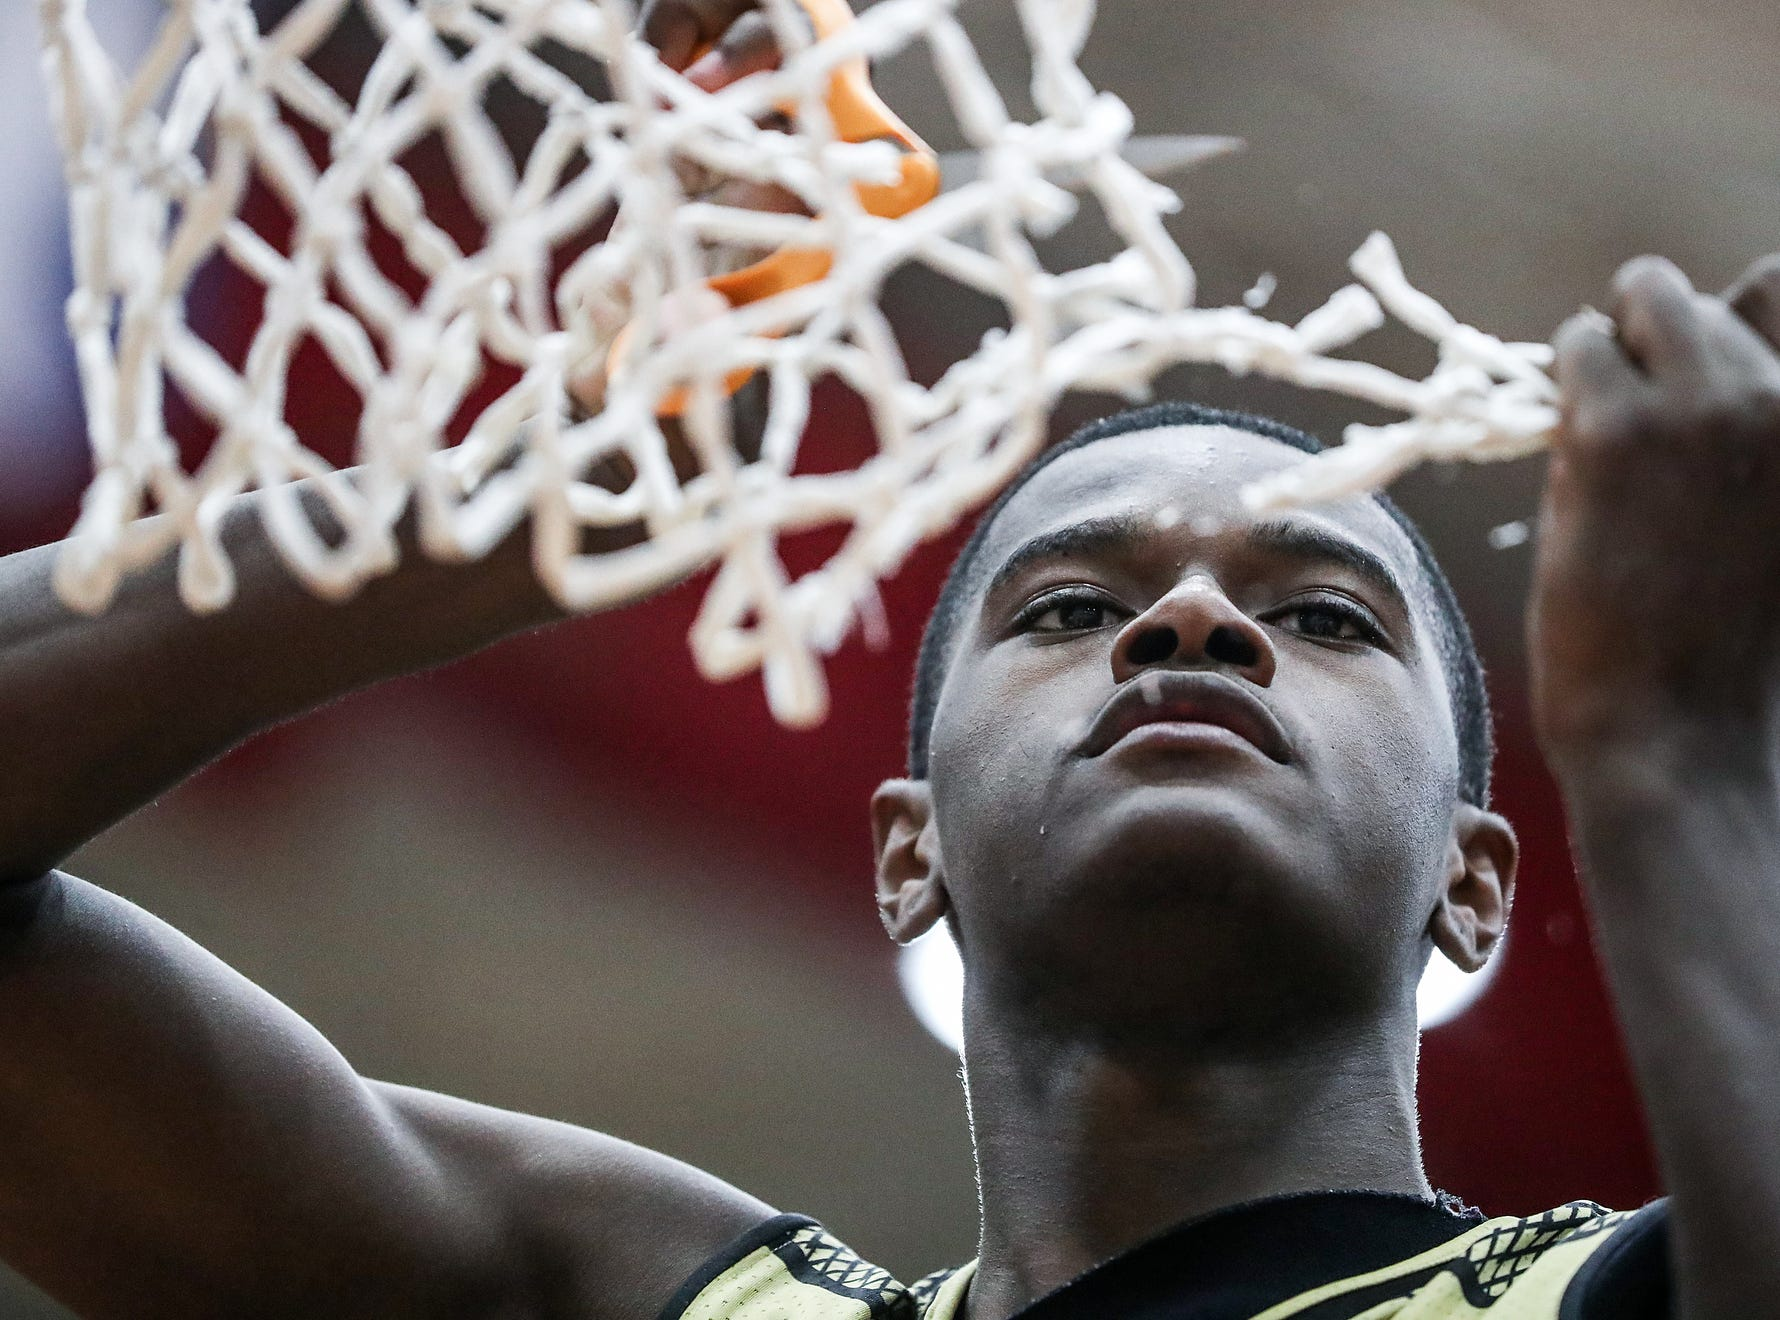 Warren Central Warriors forward Jesse Bingham (11) cuts down a piece of the net after the Warriors took the Marion County tournament title at Southport High School in Indianapolis, Monday, Jan. 14, 2019. The victory marks a 46-game winning streak for the Warriors, the third-longest in state history.